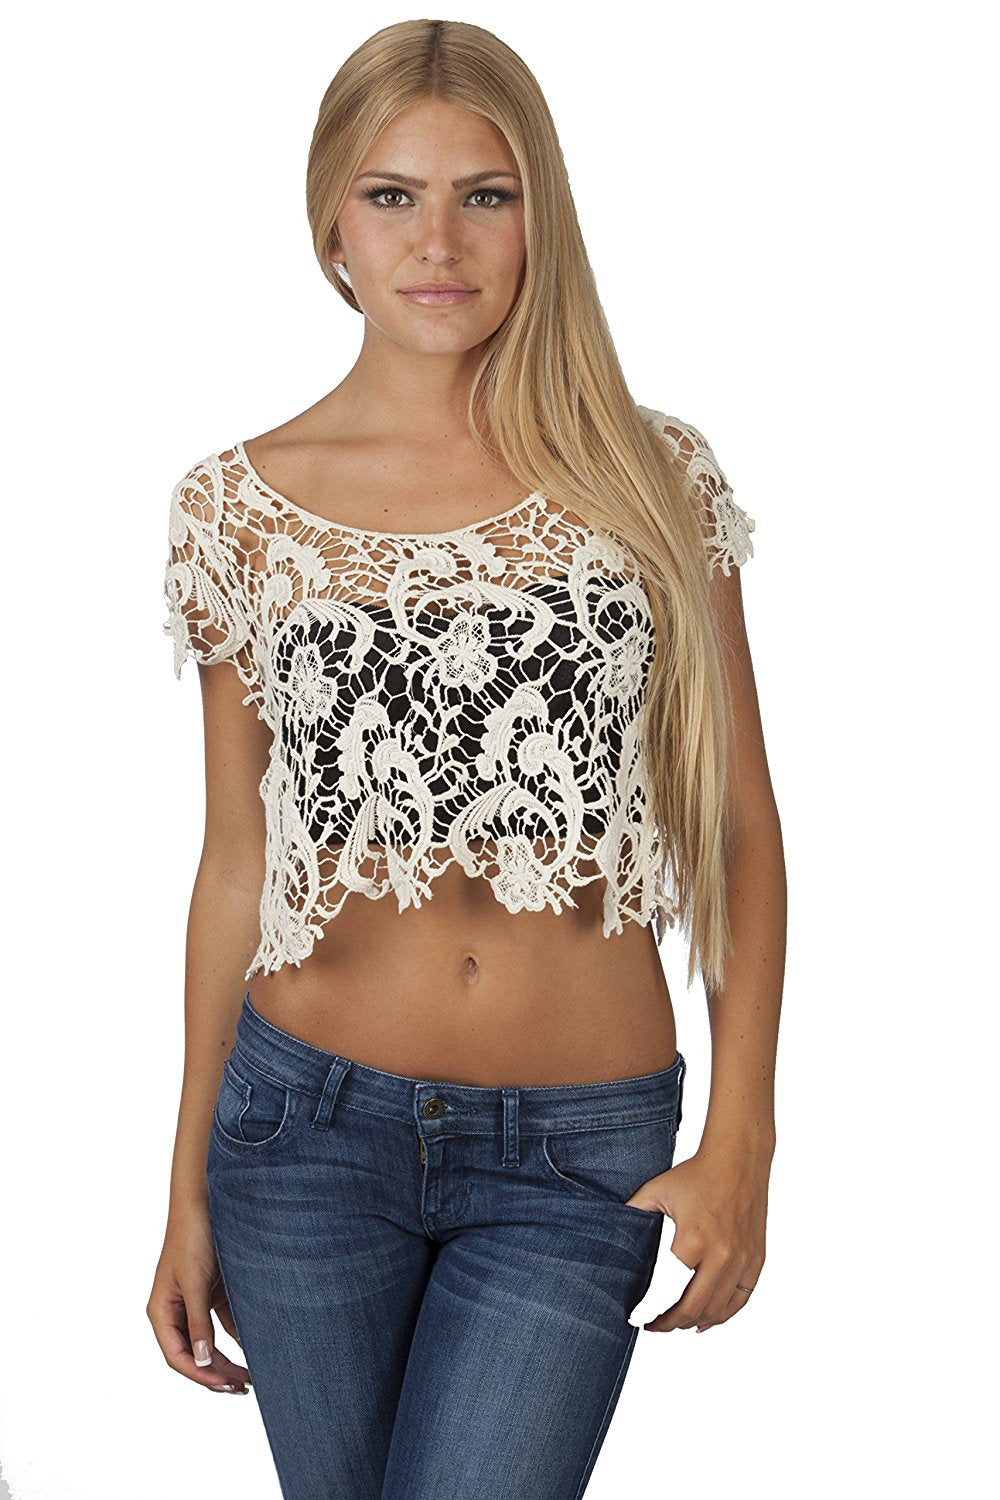 Hollywood Star Fashion Women's Scoopneck Floral Crotchet Crop Top